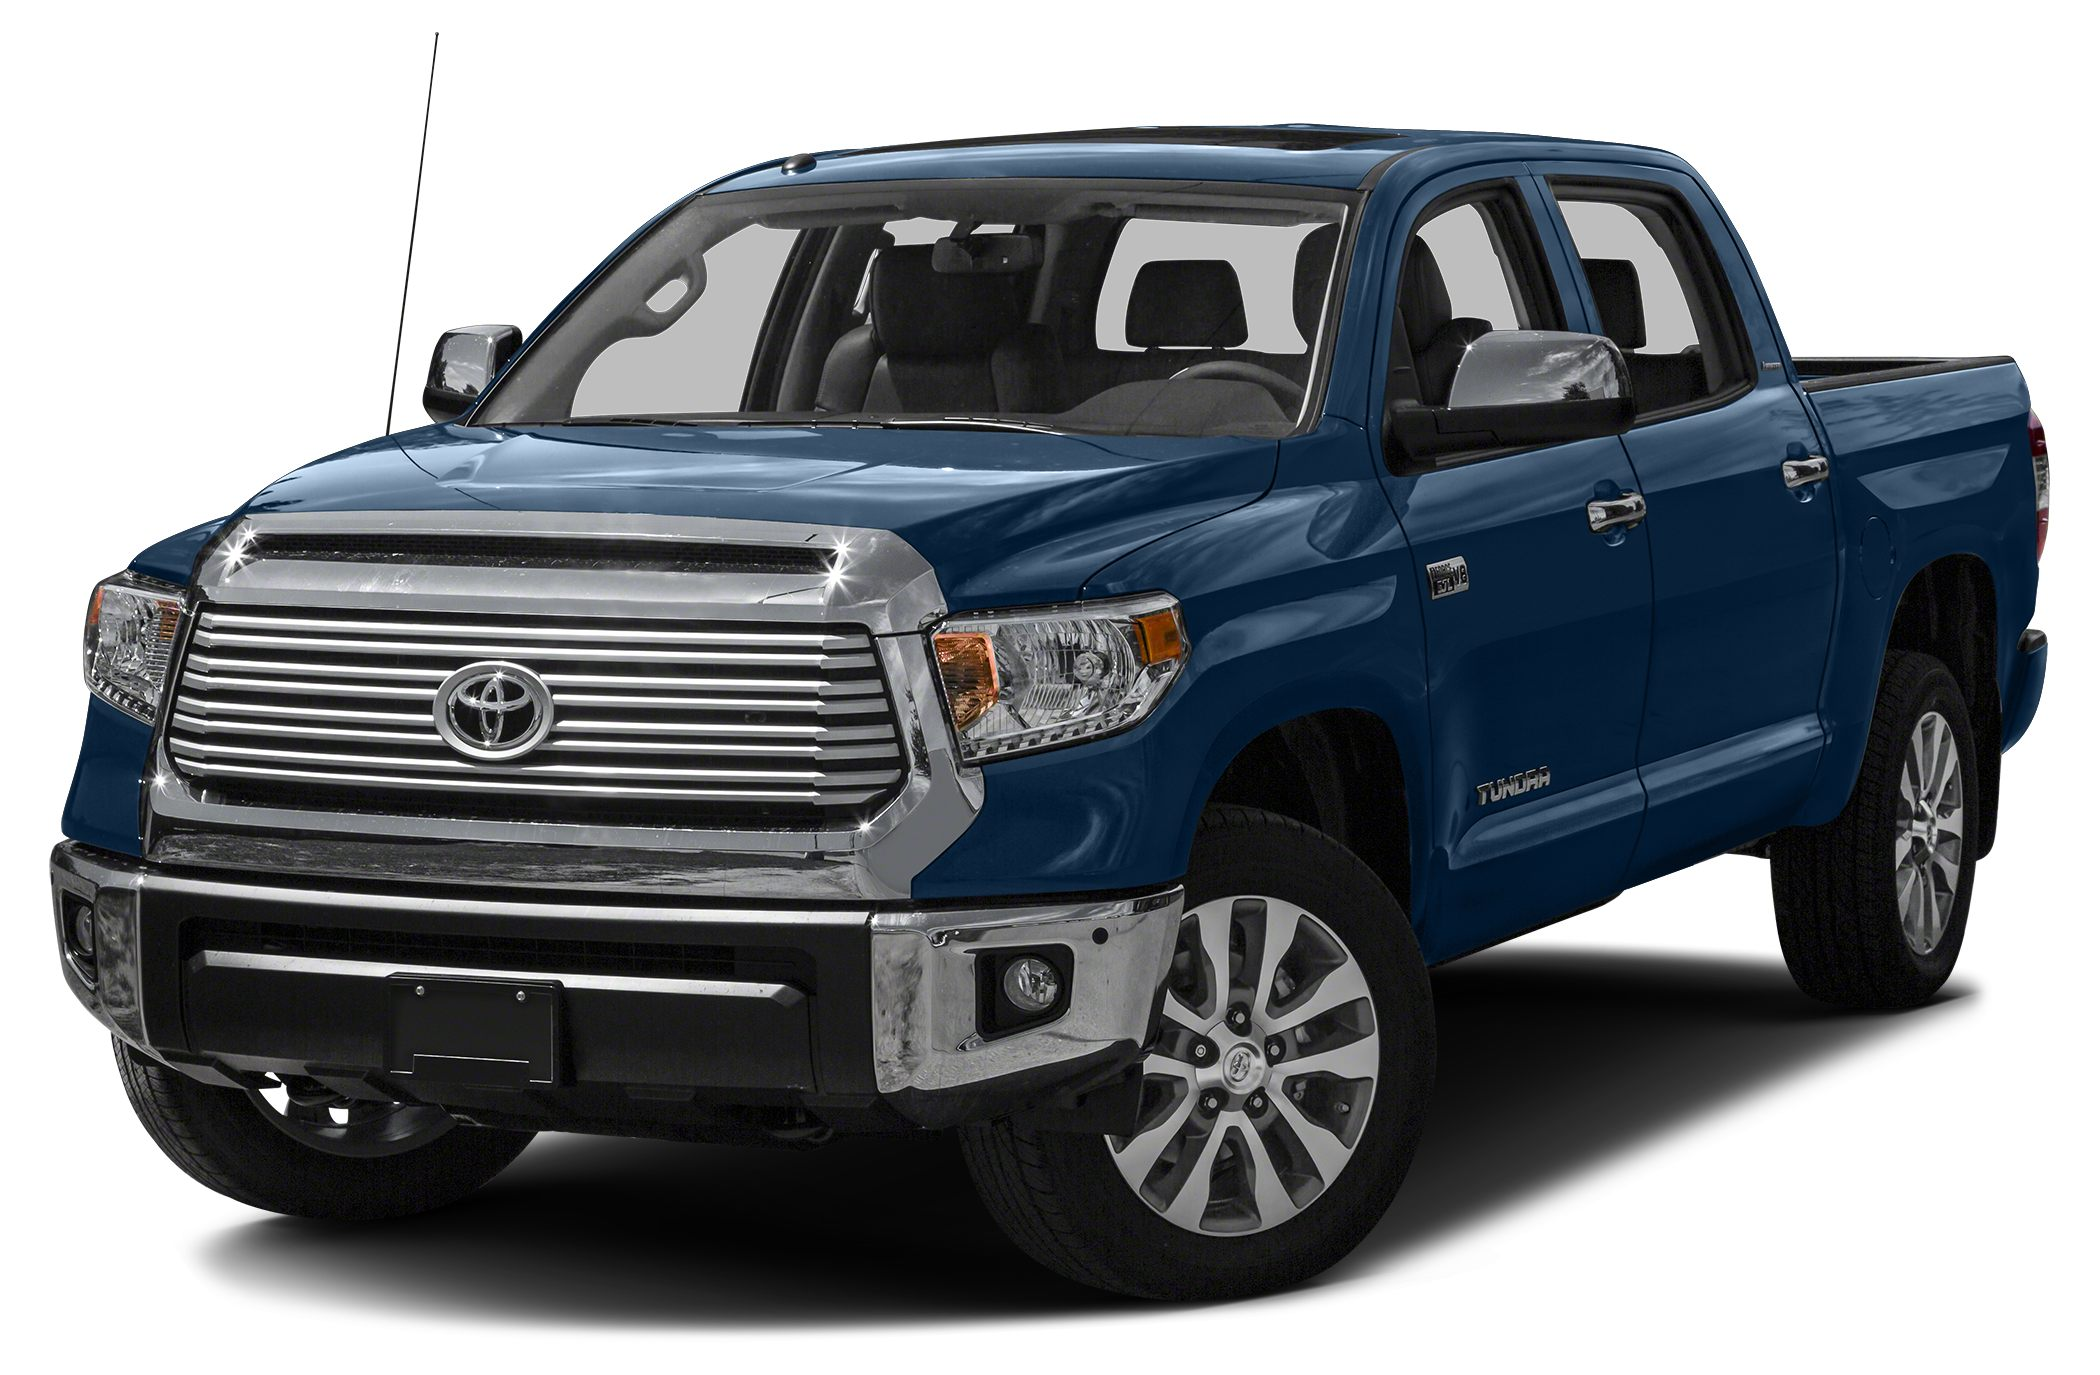 2014 Toyota Tundra Limited CARFAX 1-Owner LTD trim NAV Sunroof Heated Leather Seats Premium S